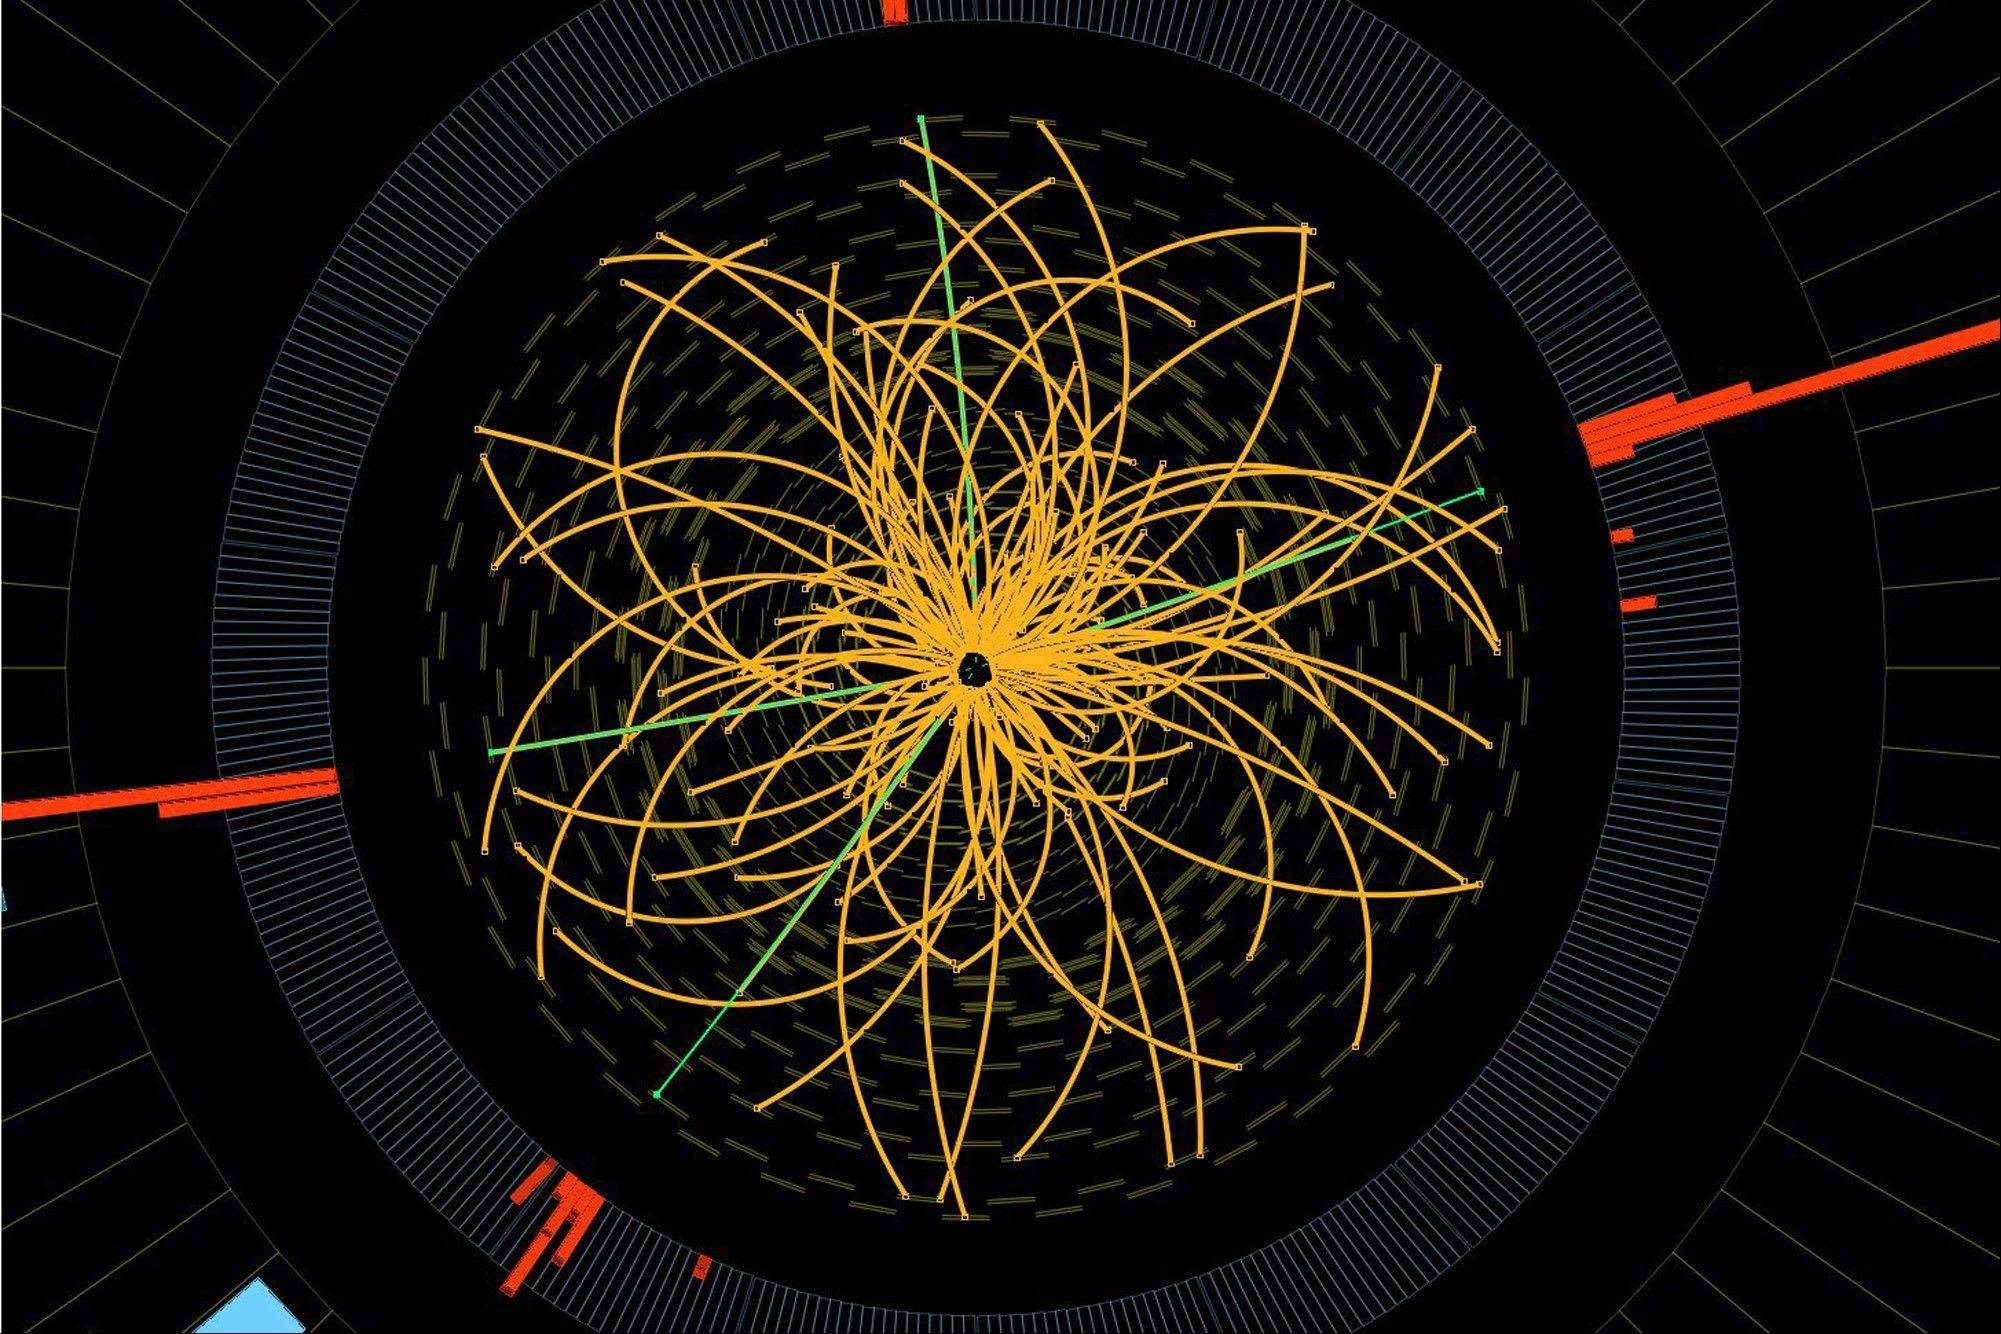 This 2011 image shows a real CMS proton-proton collision in which four high energy electrons (green lines and red towers) are observed in a 2011 event. The event shows characteristics expected from the decay of a Higgs boson but is also consistent with background Standard Model physics processes. Physicists say they are now confident they have discovered a long-sought subatomic particle known as a Higgs boson.